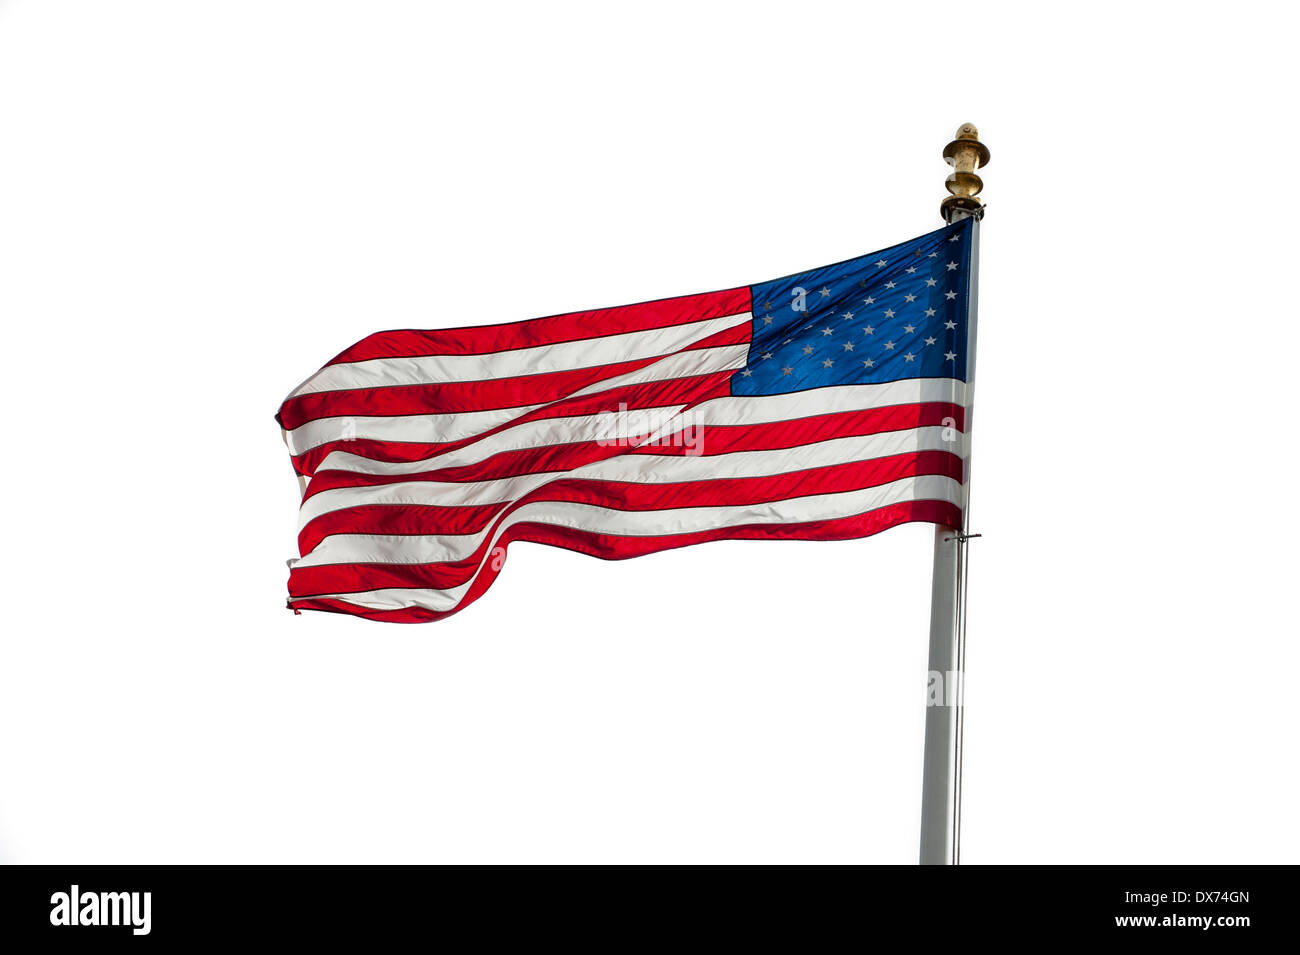 American flag showing US Stars and Stripes blowing in the wind on white background - Stock Image